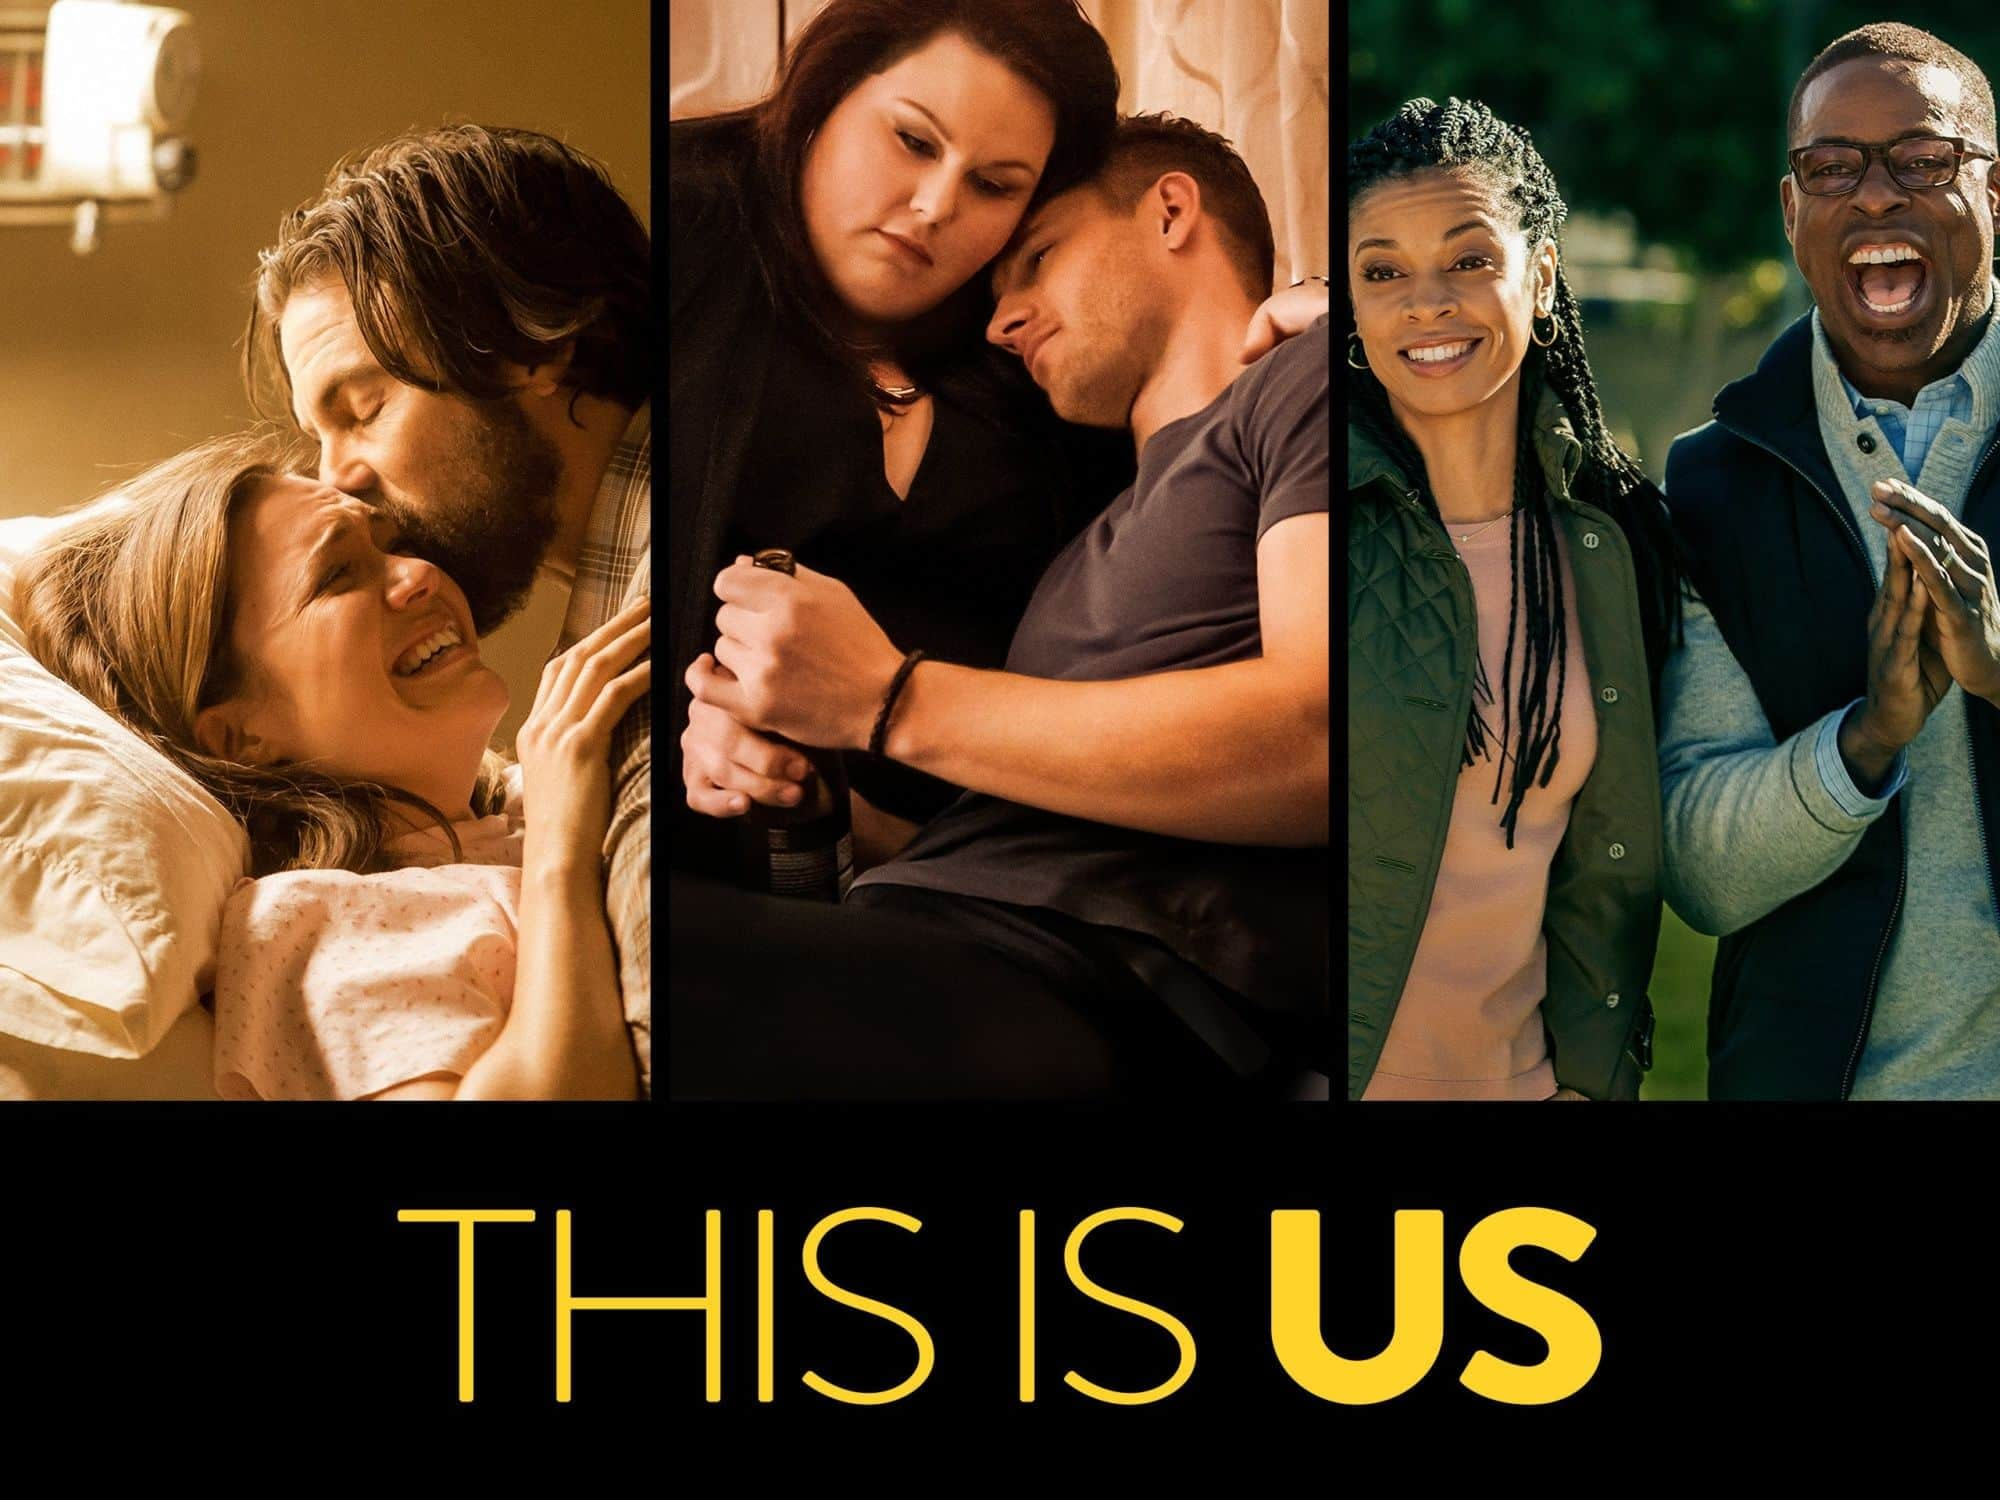 This Is Us Season 1: This is Real. This is Love. This is Life. This is Our Recap. (BC REWIND)